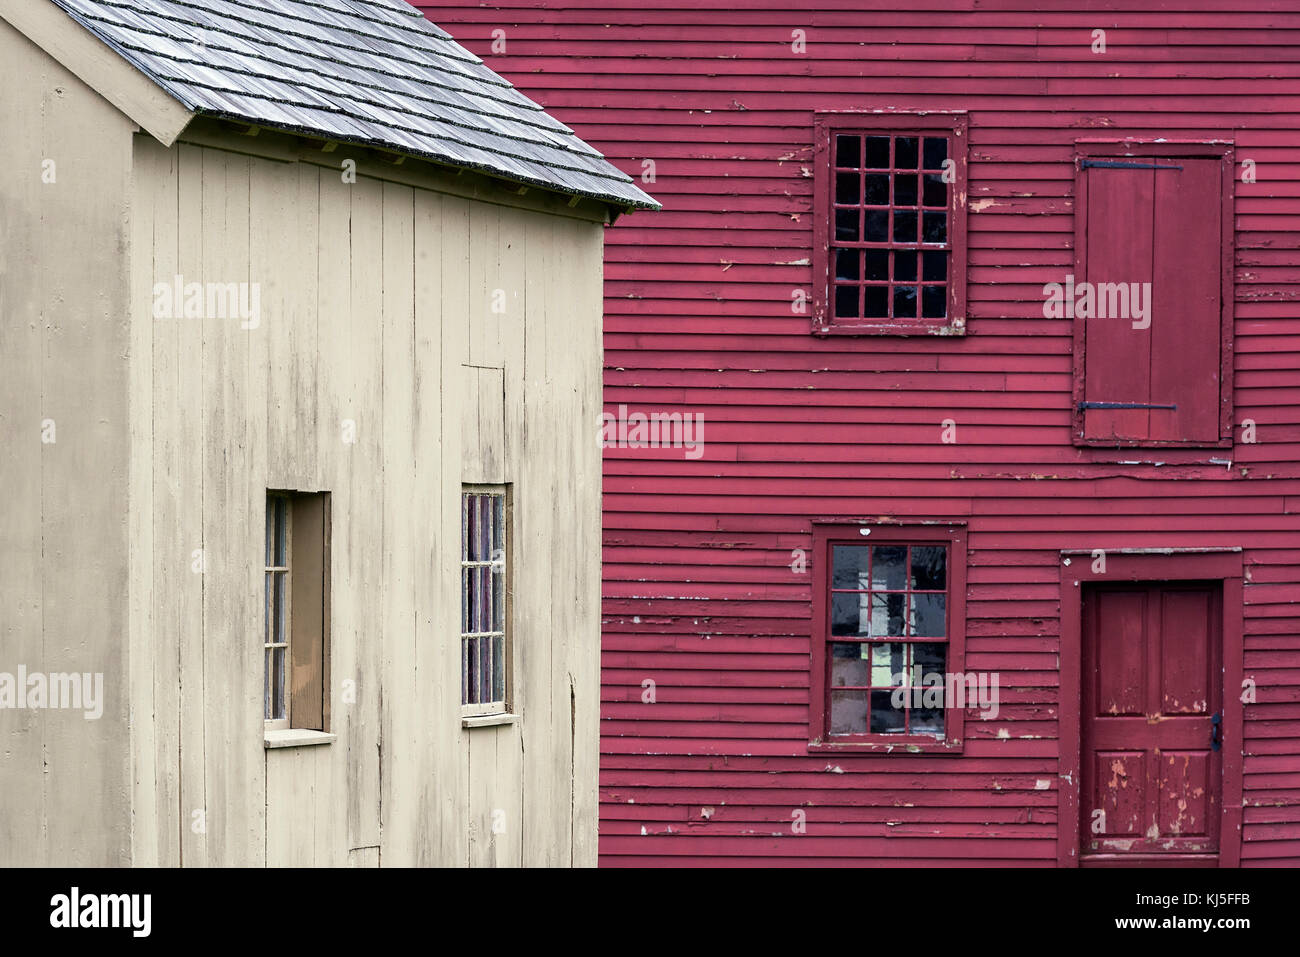 Shaker Architecture Stock Photos & Shaker Architecture Stock Images ...